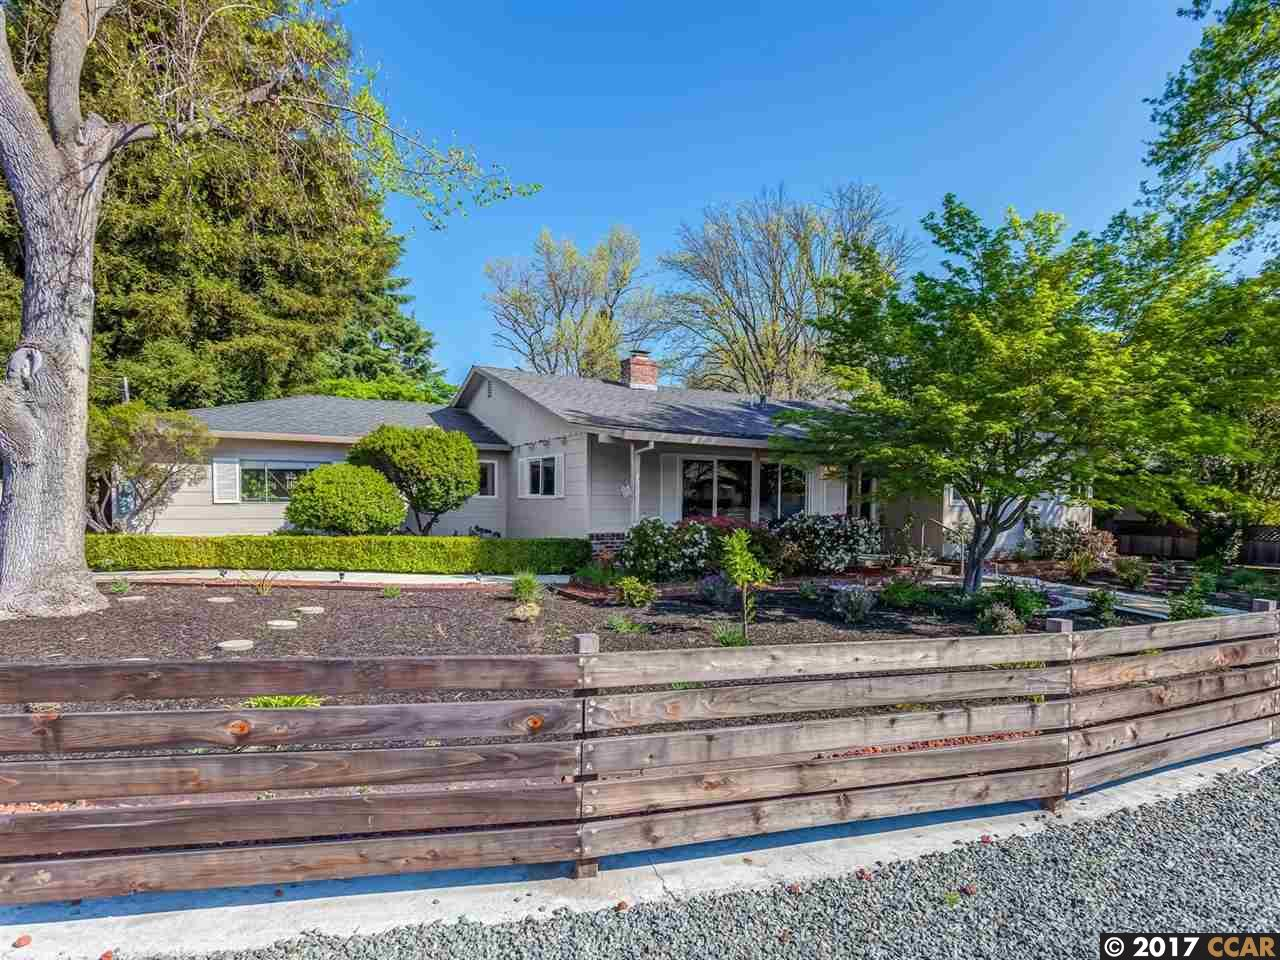 121 Greenway Dr, WALNUT CREEK, 94596, CA